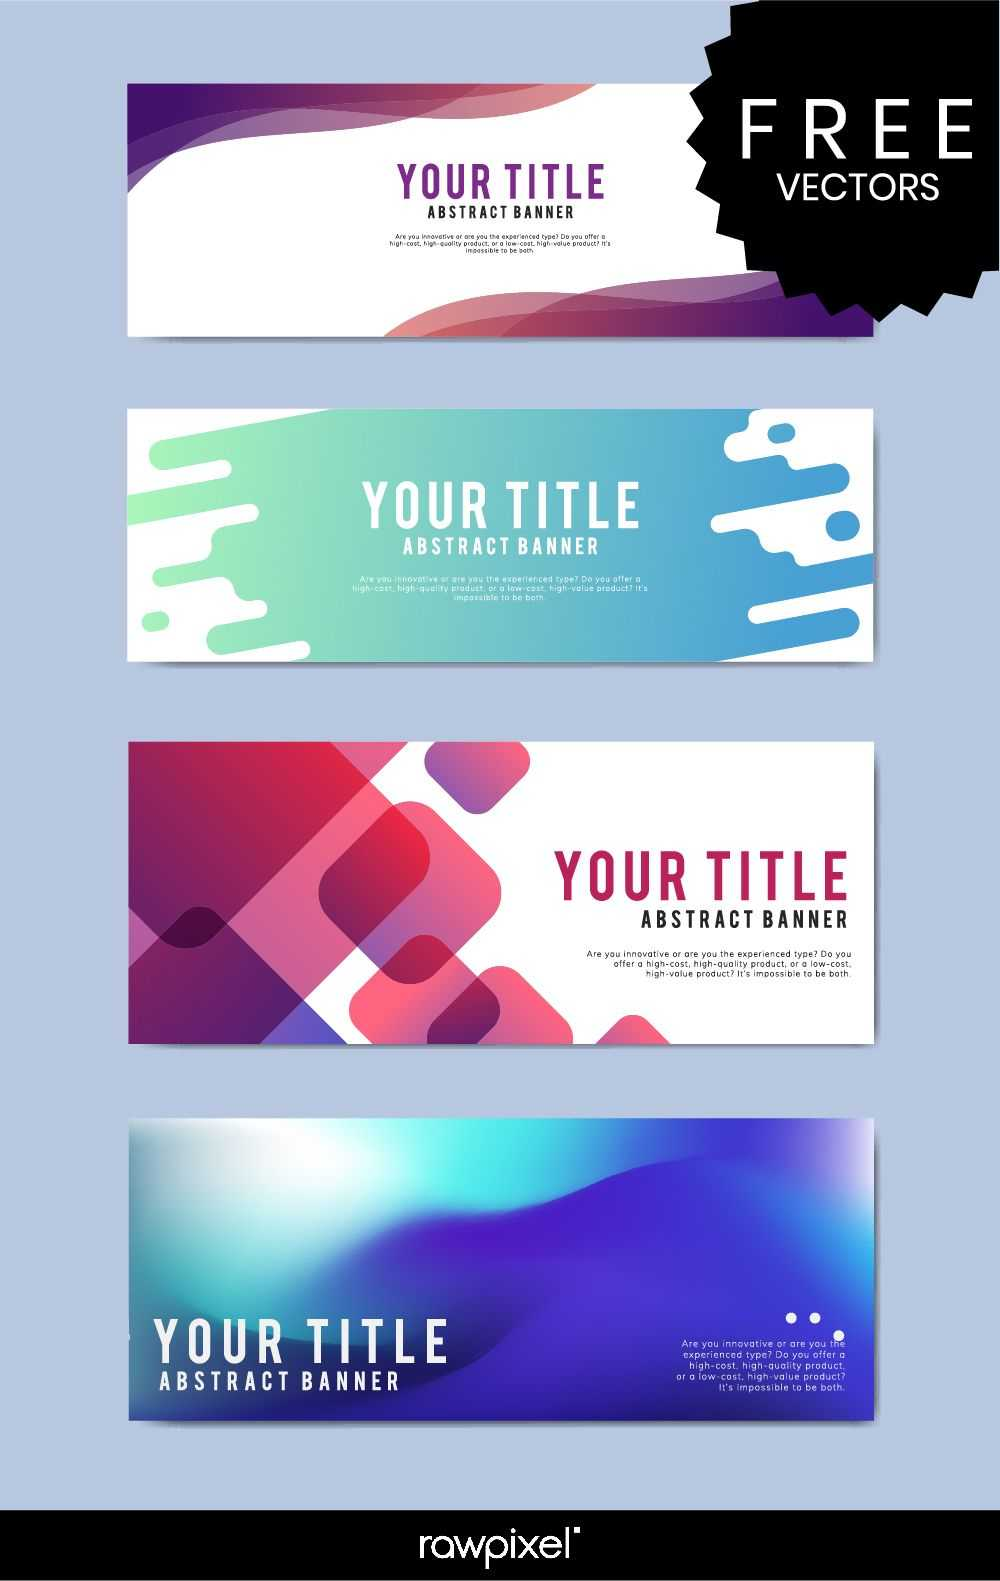 Download Free Modern Business Banner Templates At Rawpixel Throughout Website Banner Templates Free Download